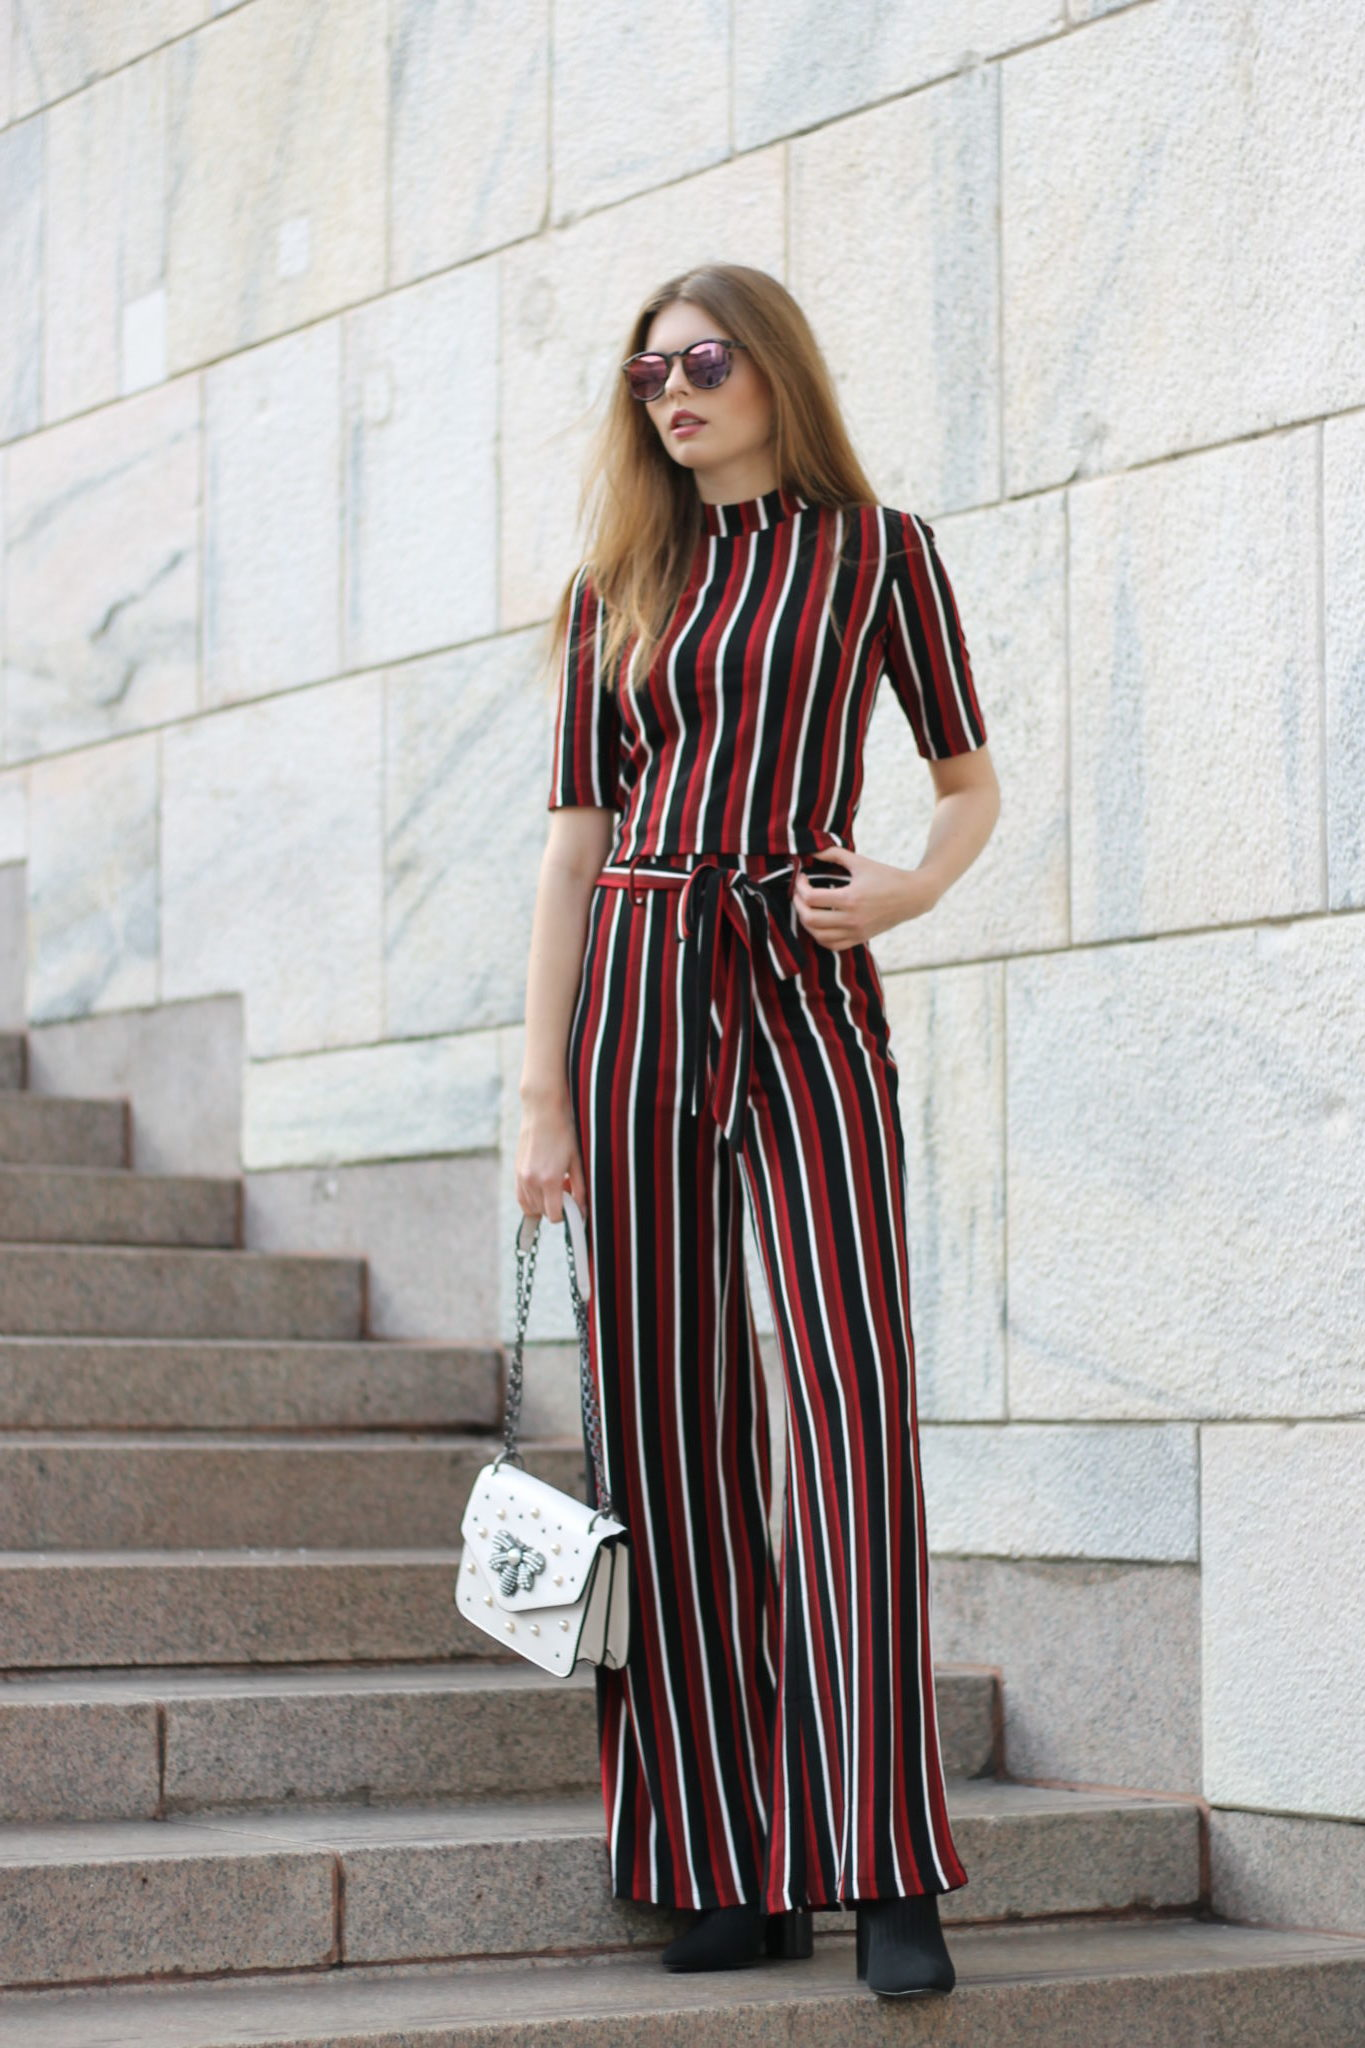 IMG 1688 e1519228683819 - BOLD STRIPED JUMPSUIT I MILAN